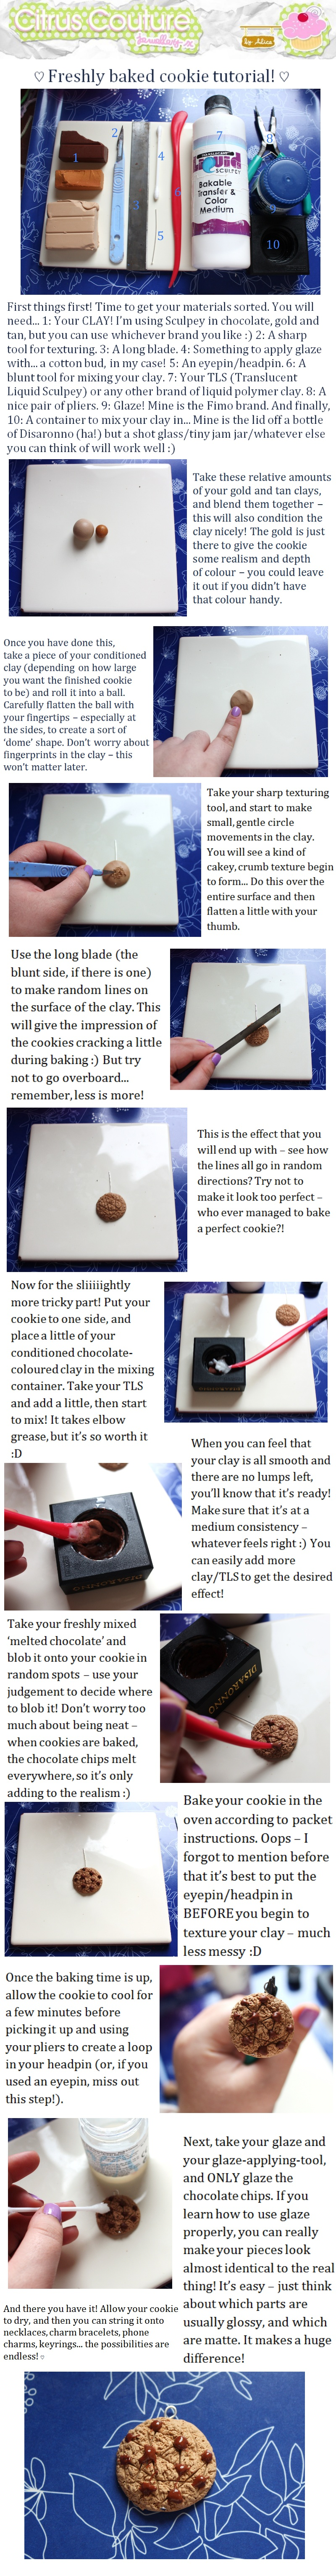 Cookie charm tutorial by citruscouture